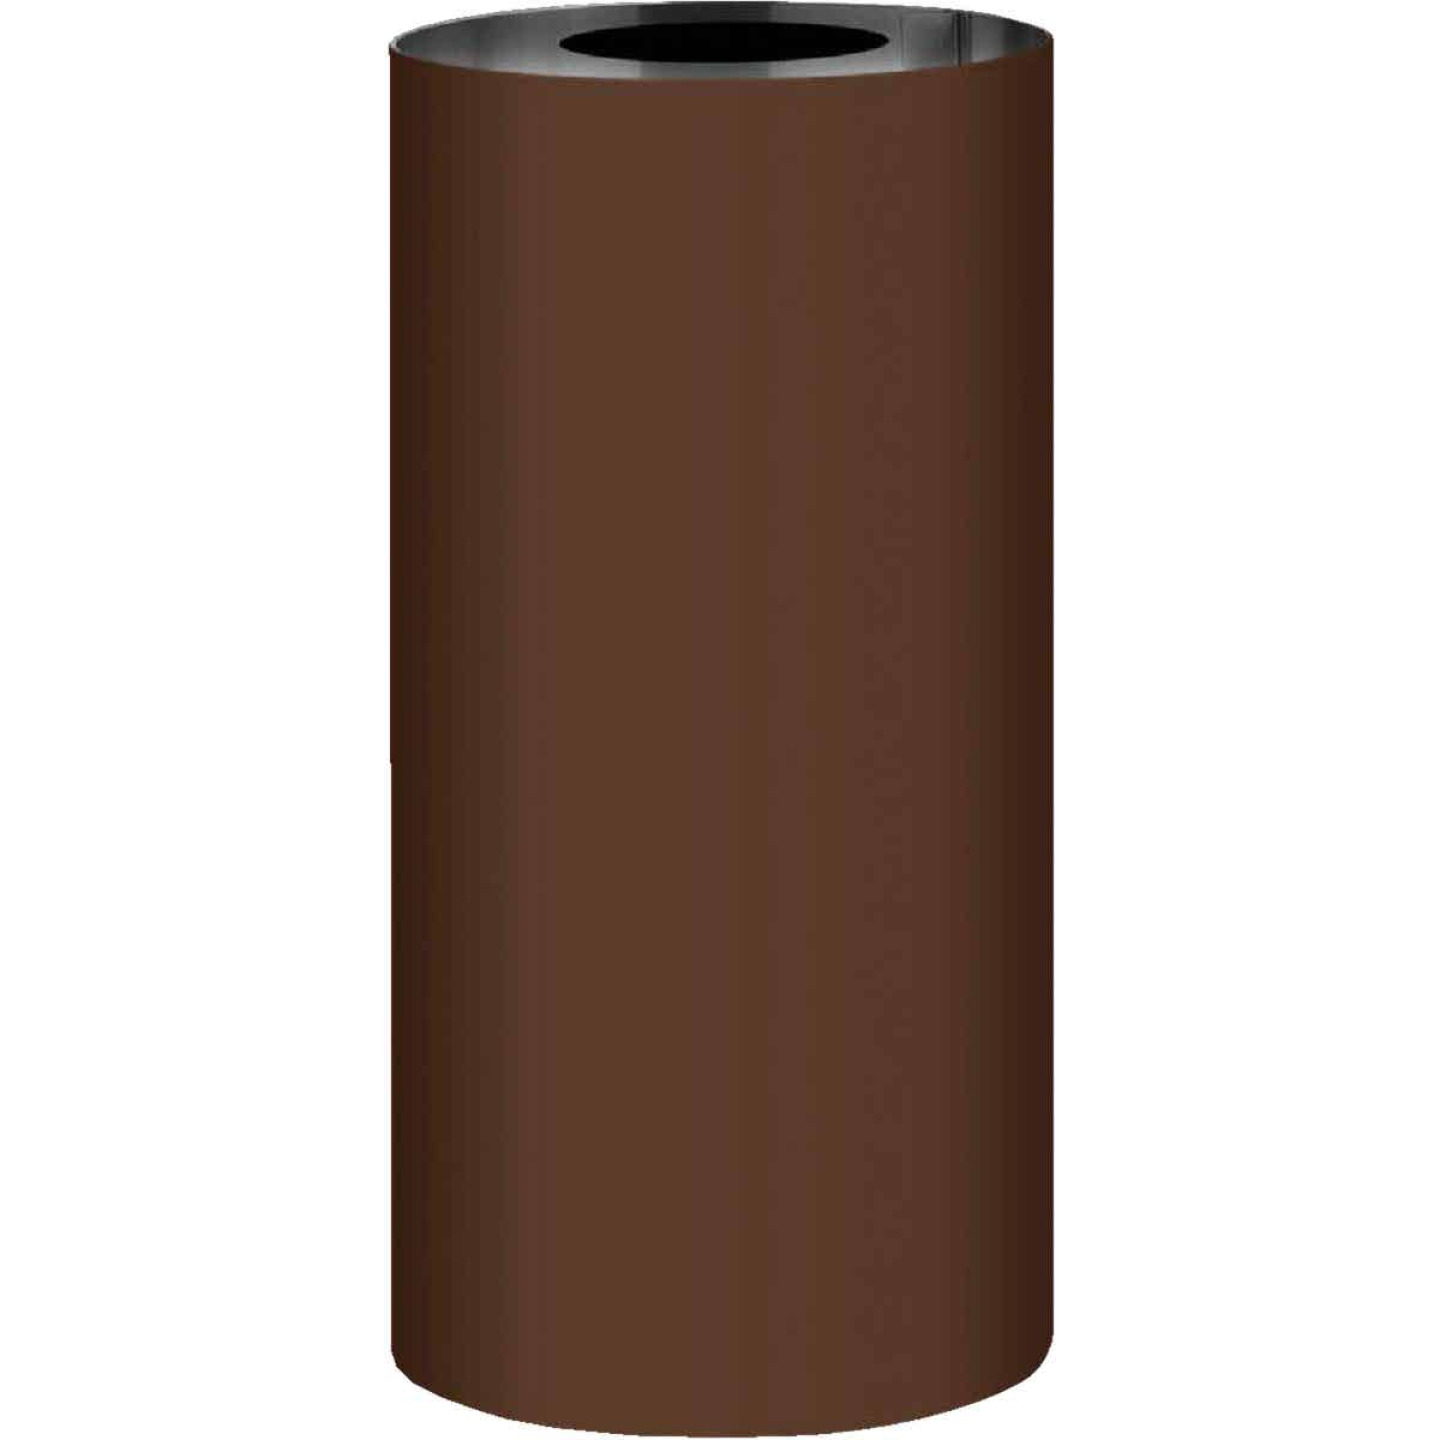 NorWesco 20 In. x 50 Ft. Brown Galvanized Roll Valley Flashing Image 1